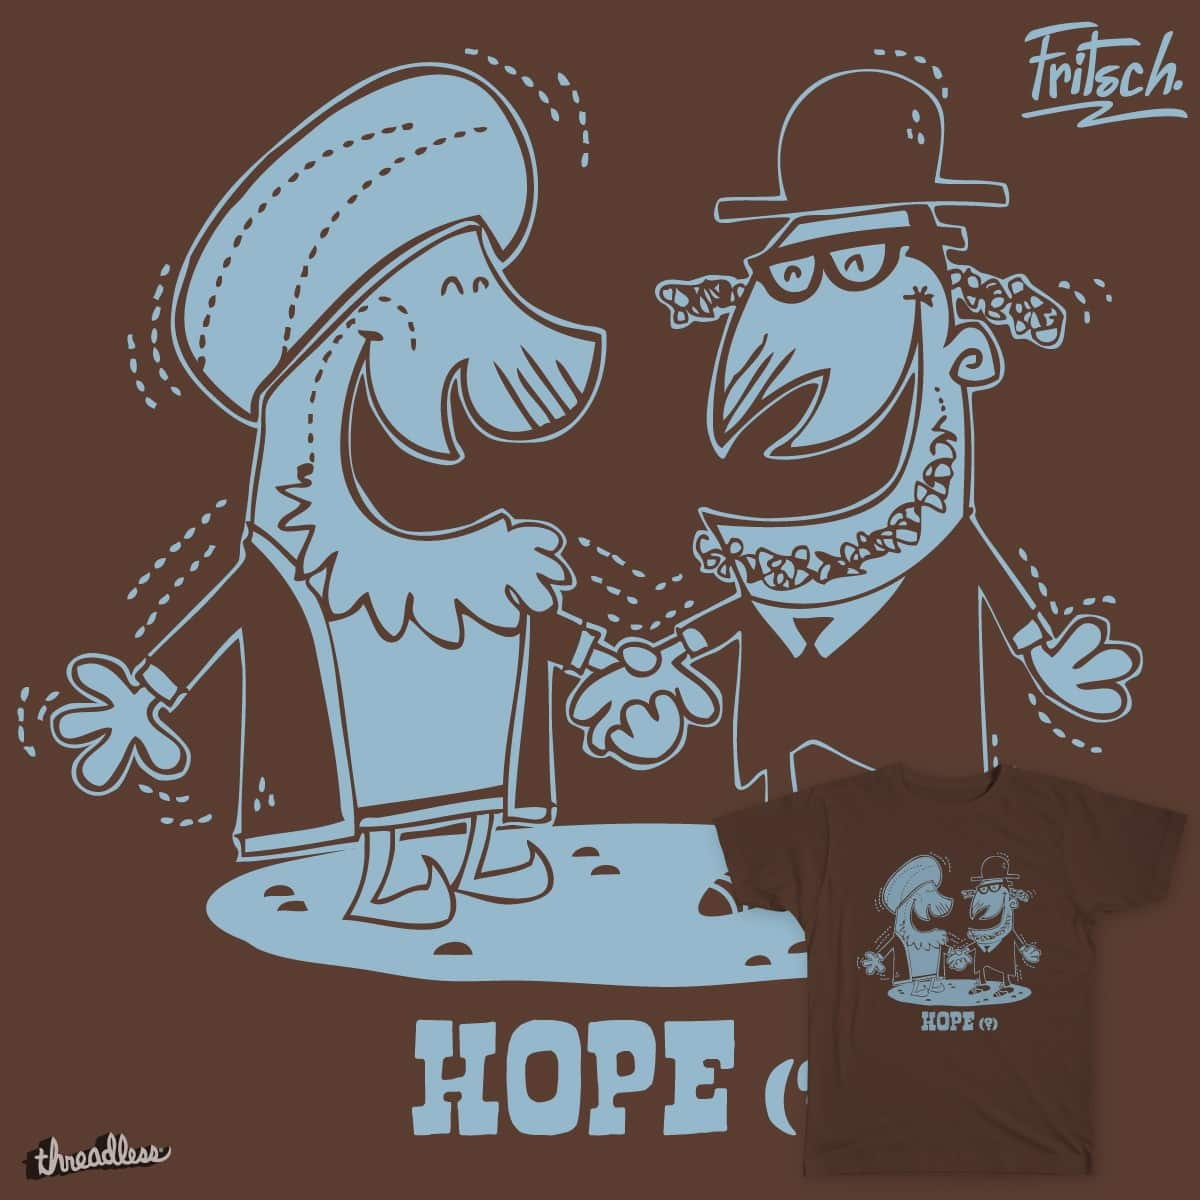 Hope by Fritsch on Threadless